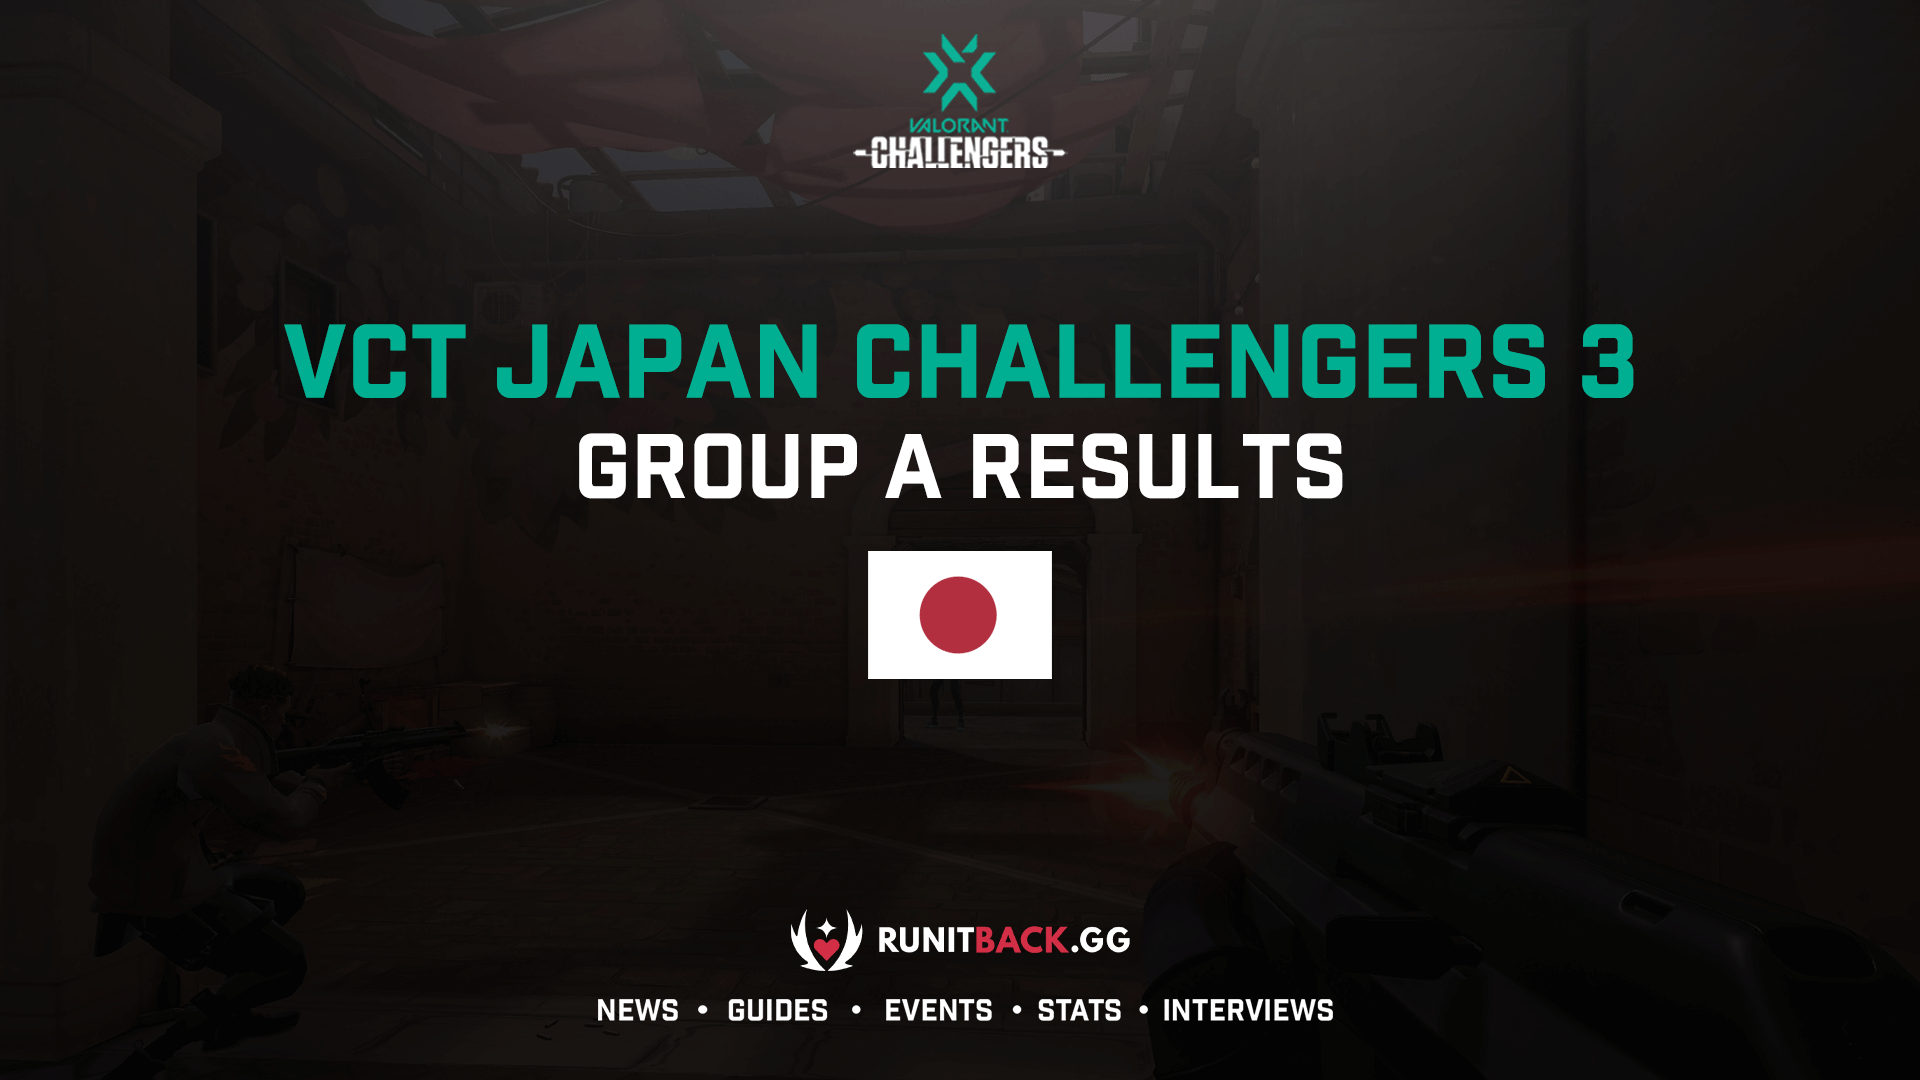 VCT Japan: Challengers 3 Group A Results